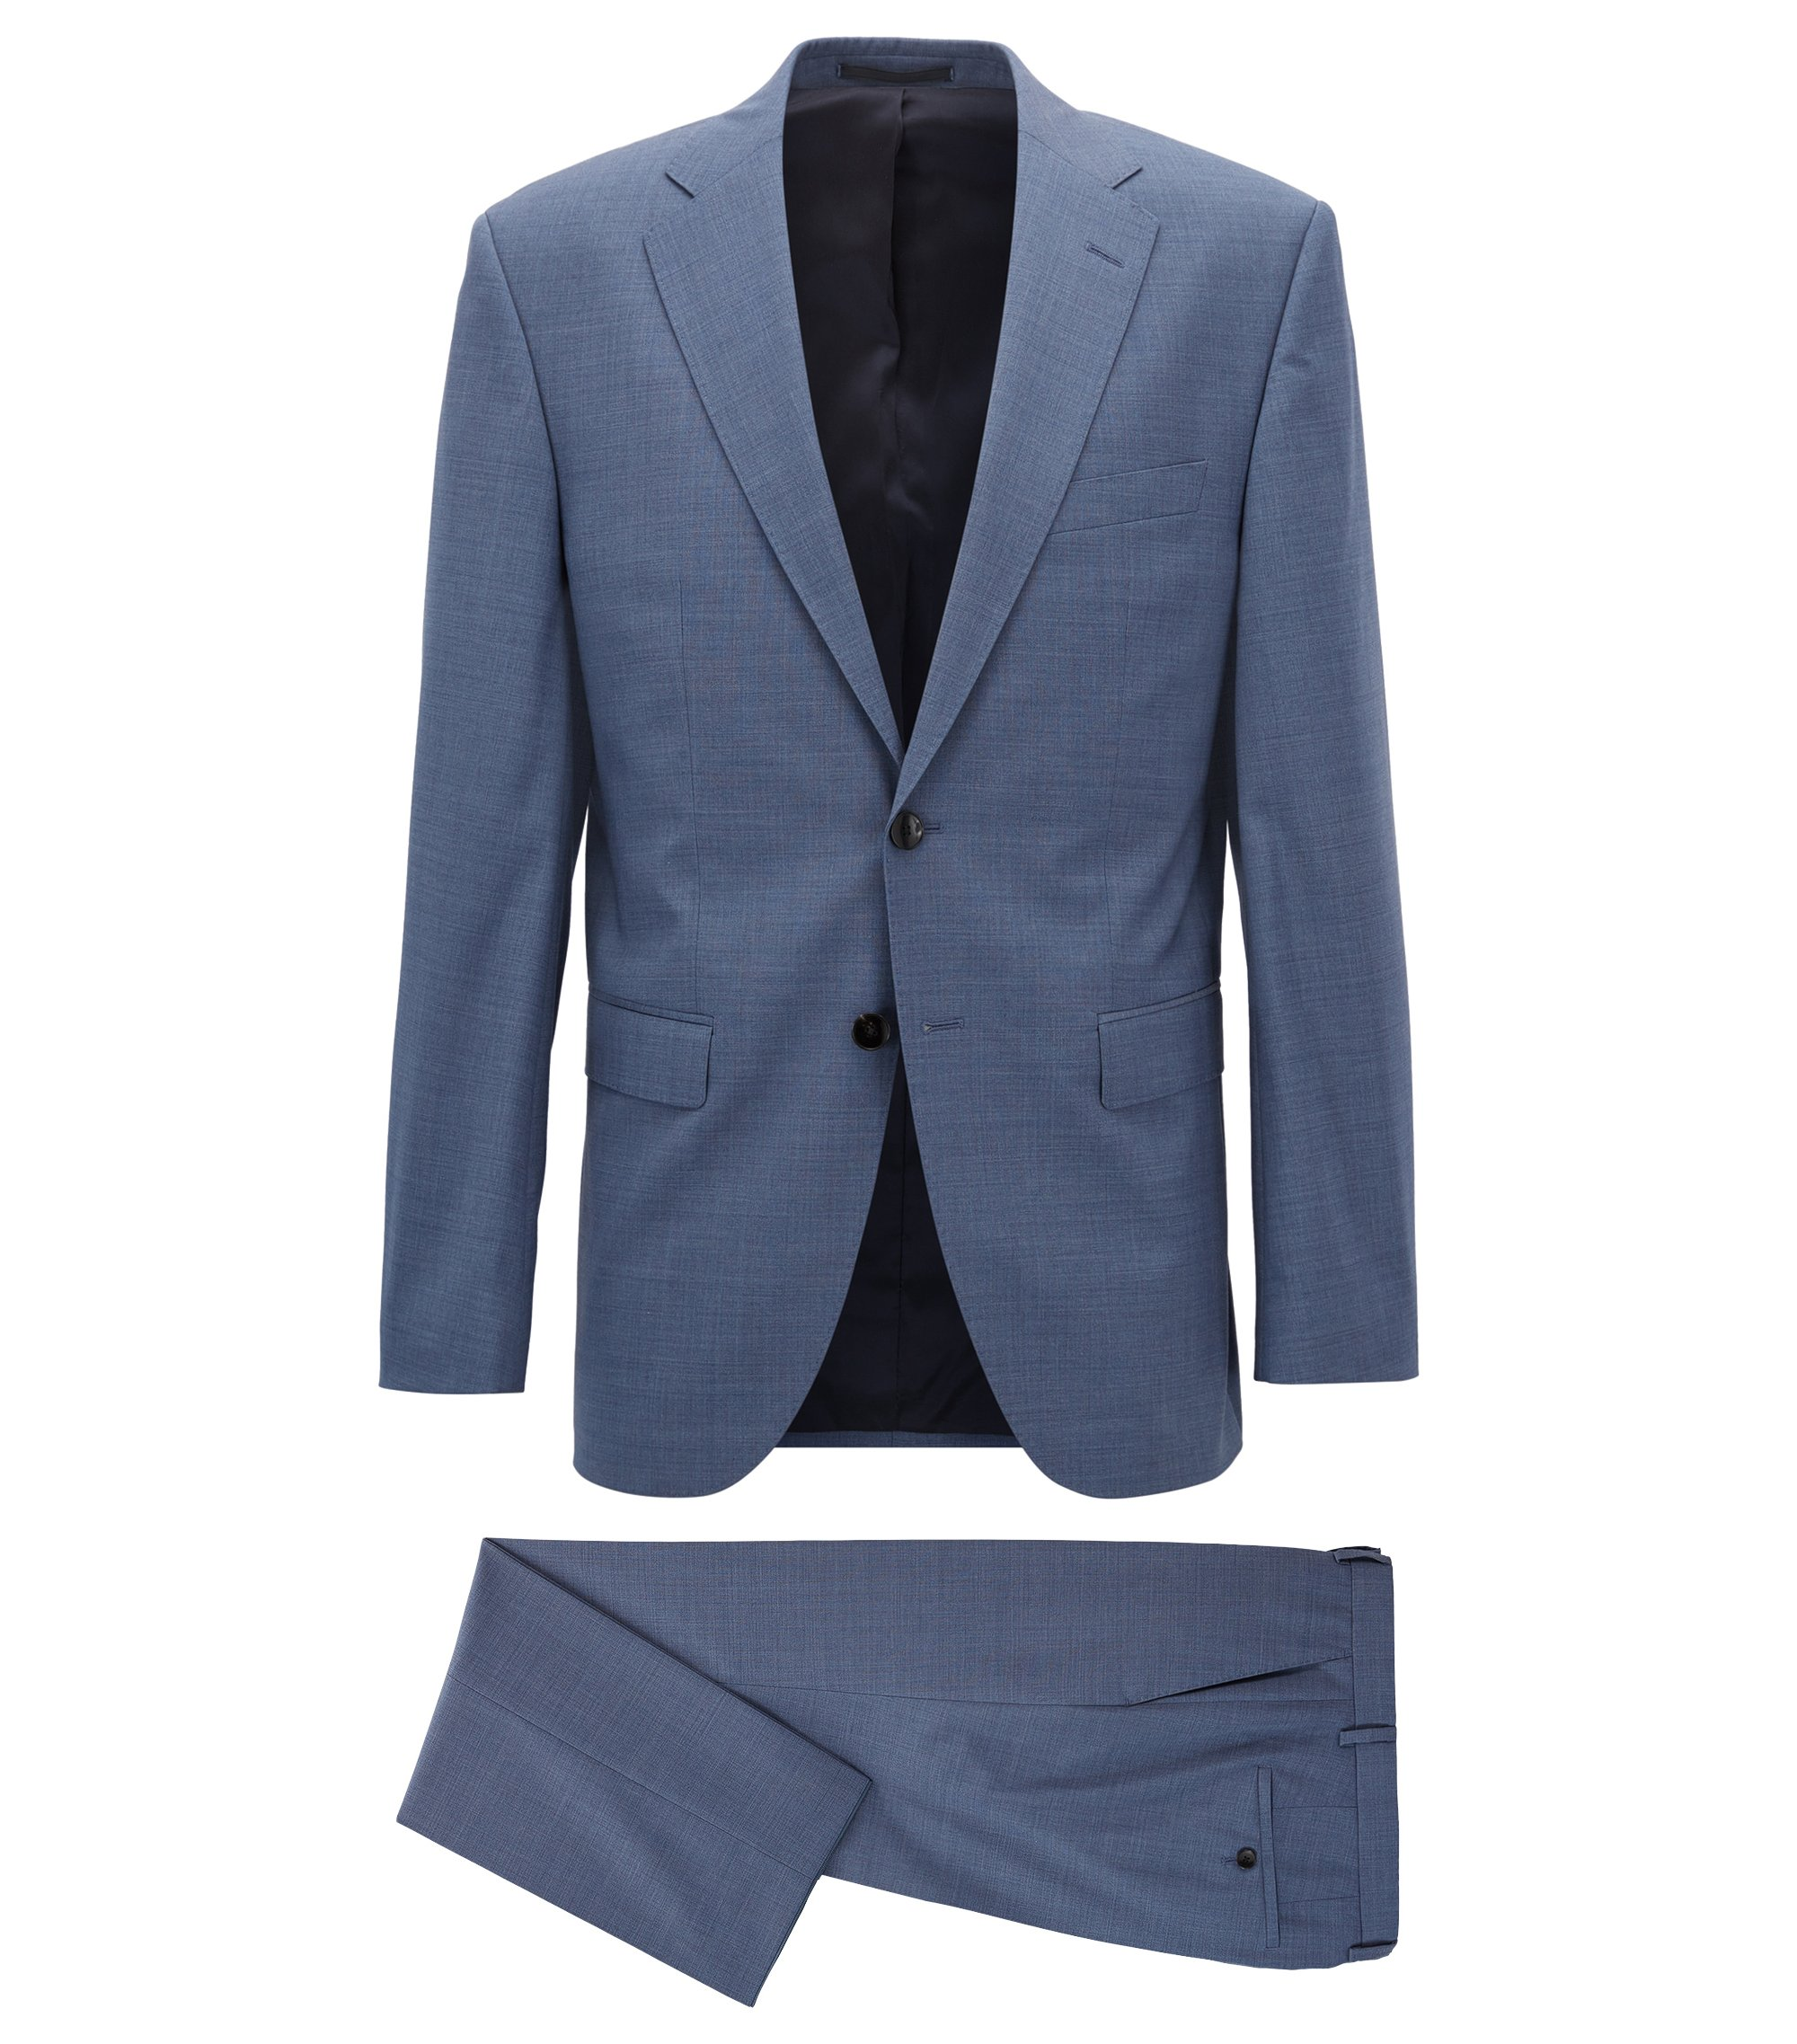 Virgin Wool Suit, Regular Fit | Phoenix/Madisen, Light Blue